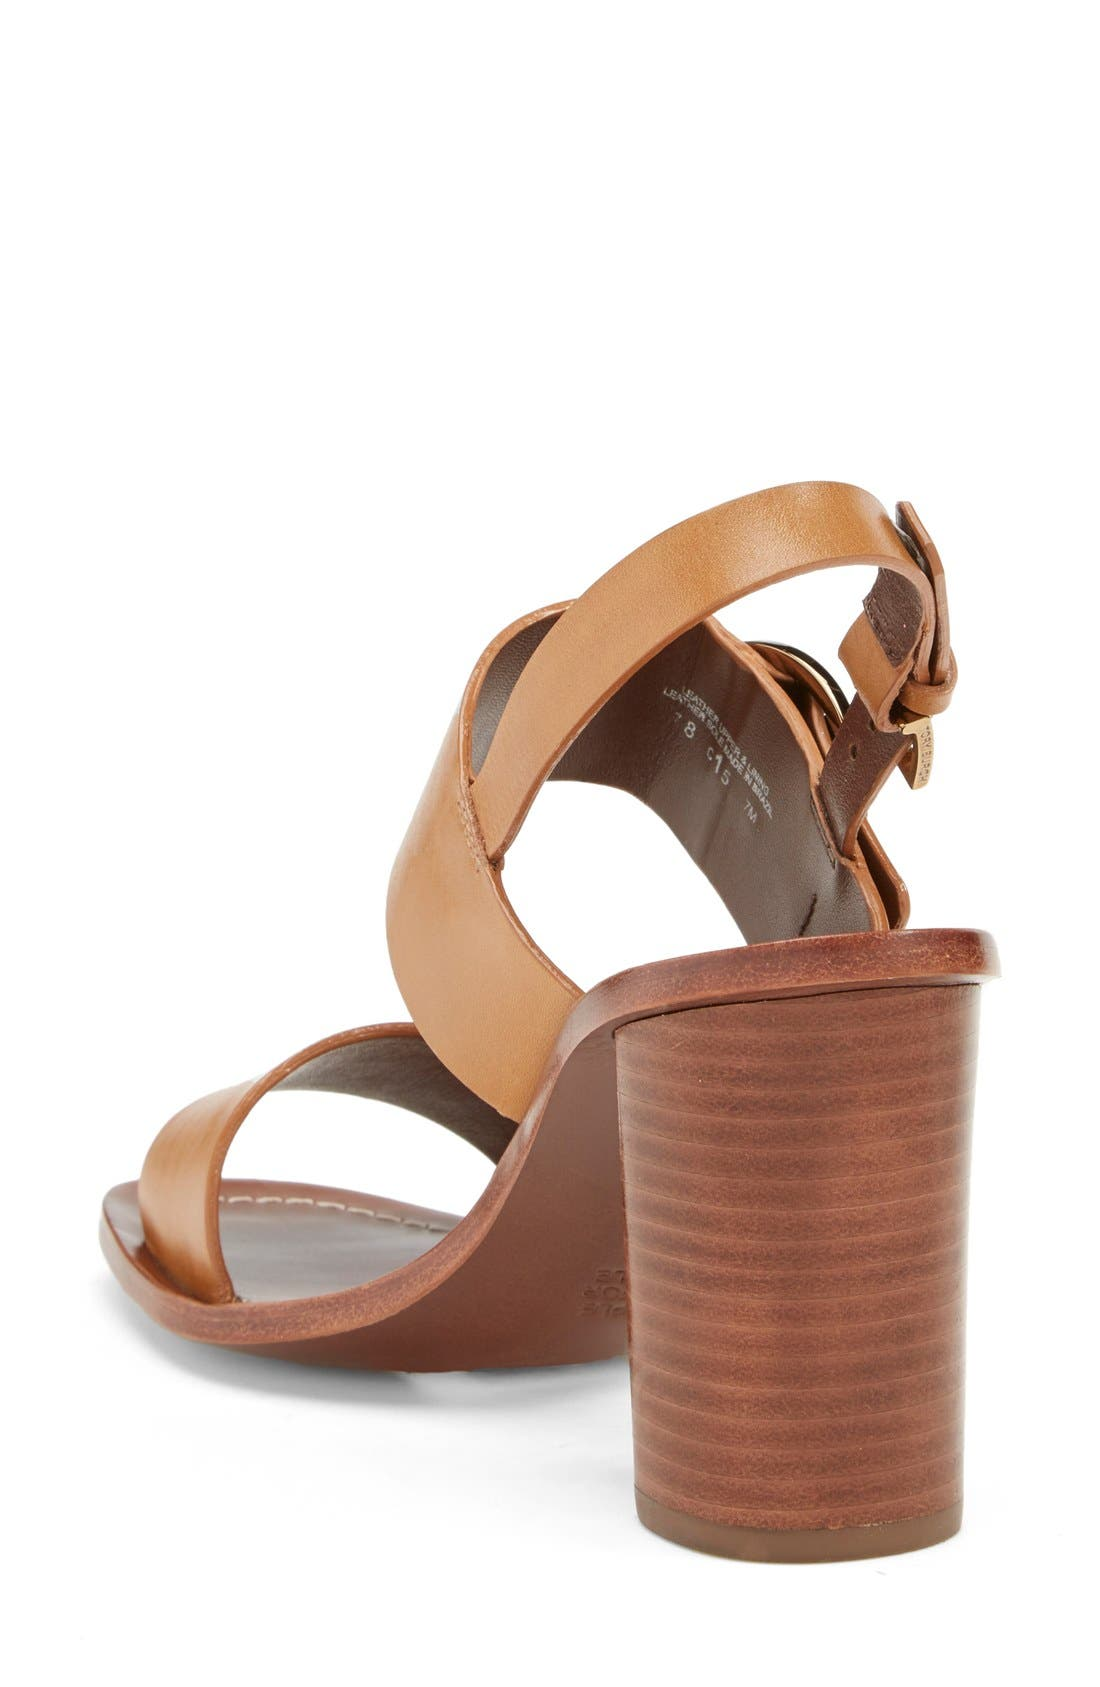 Alternate Image 2  - Tory Burch 'Thames' Sandal (Women)